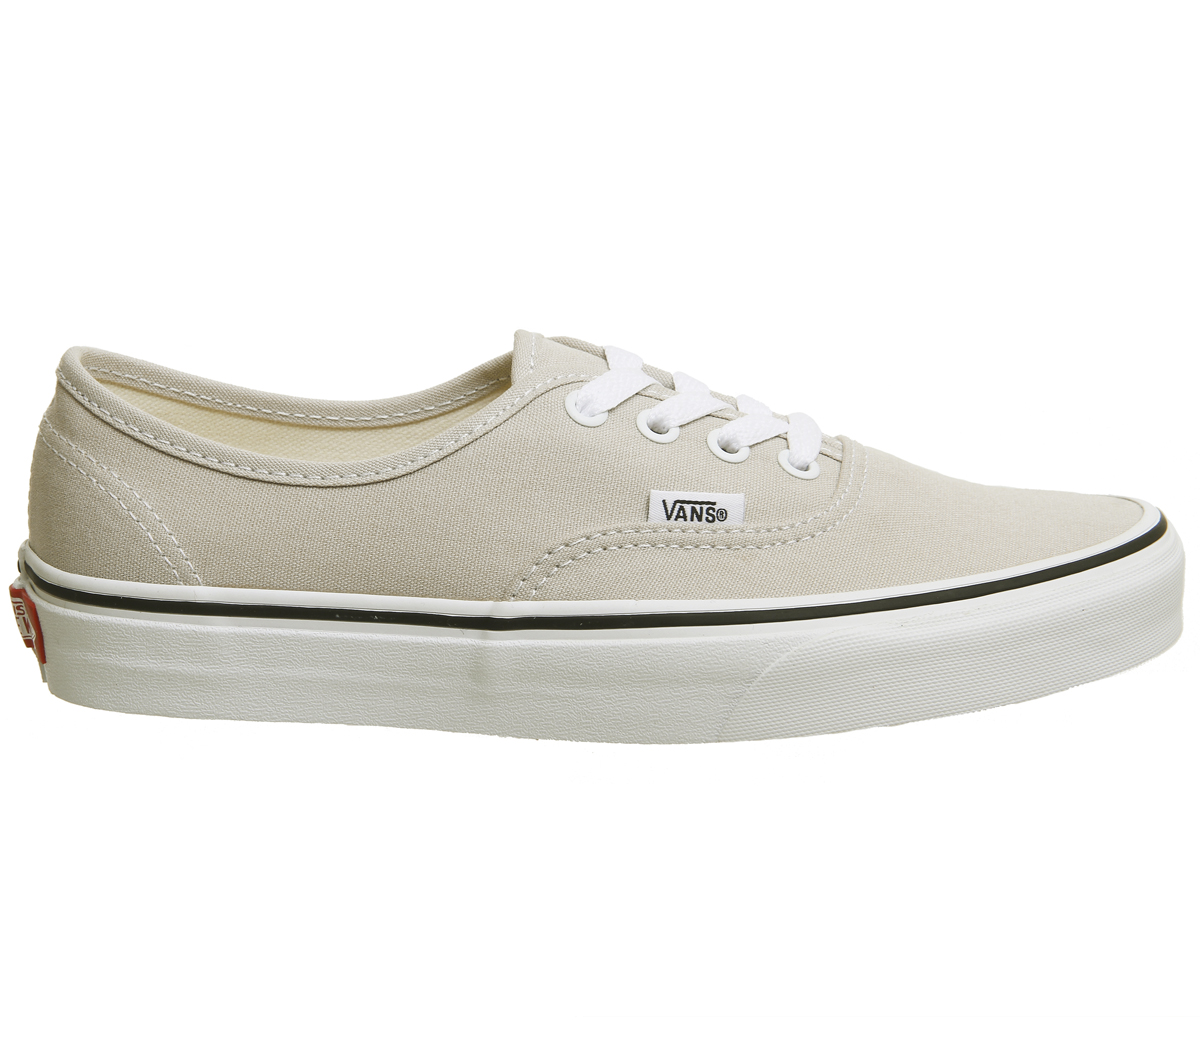 Damenschuhe Vans Authentic Trainers SILVER TRUE WEISS Trainers Schuhes